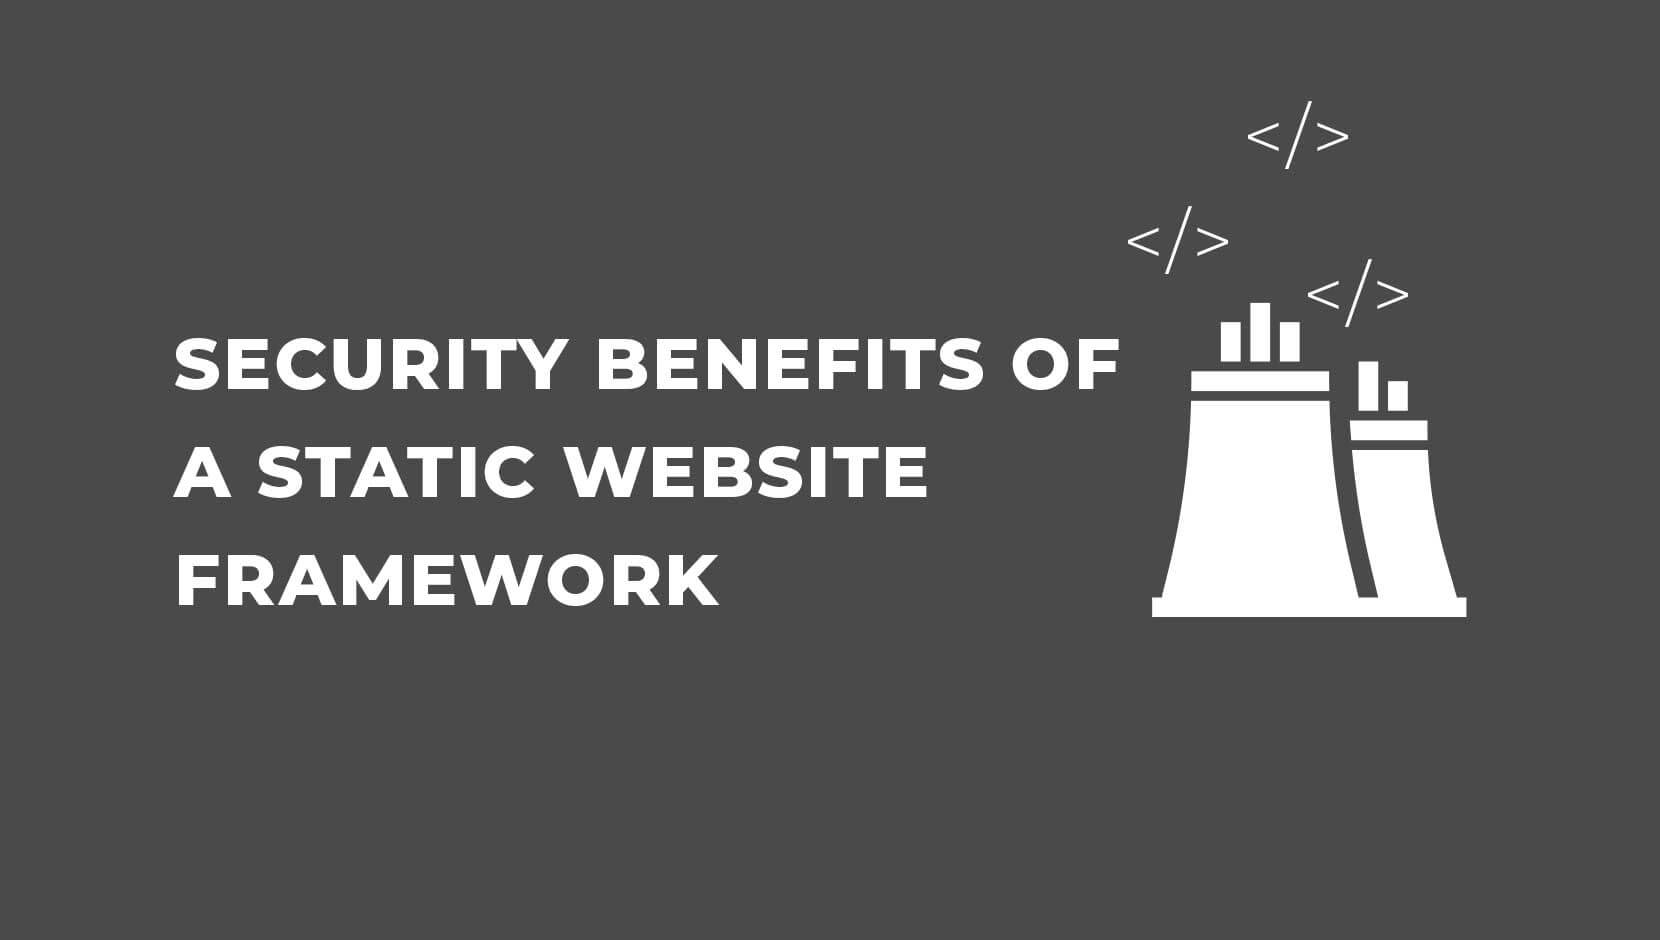 4 Security Benefits of a Static Website Framework